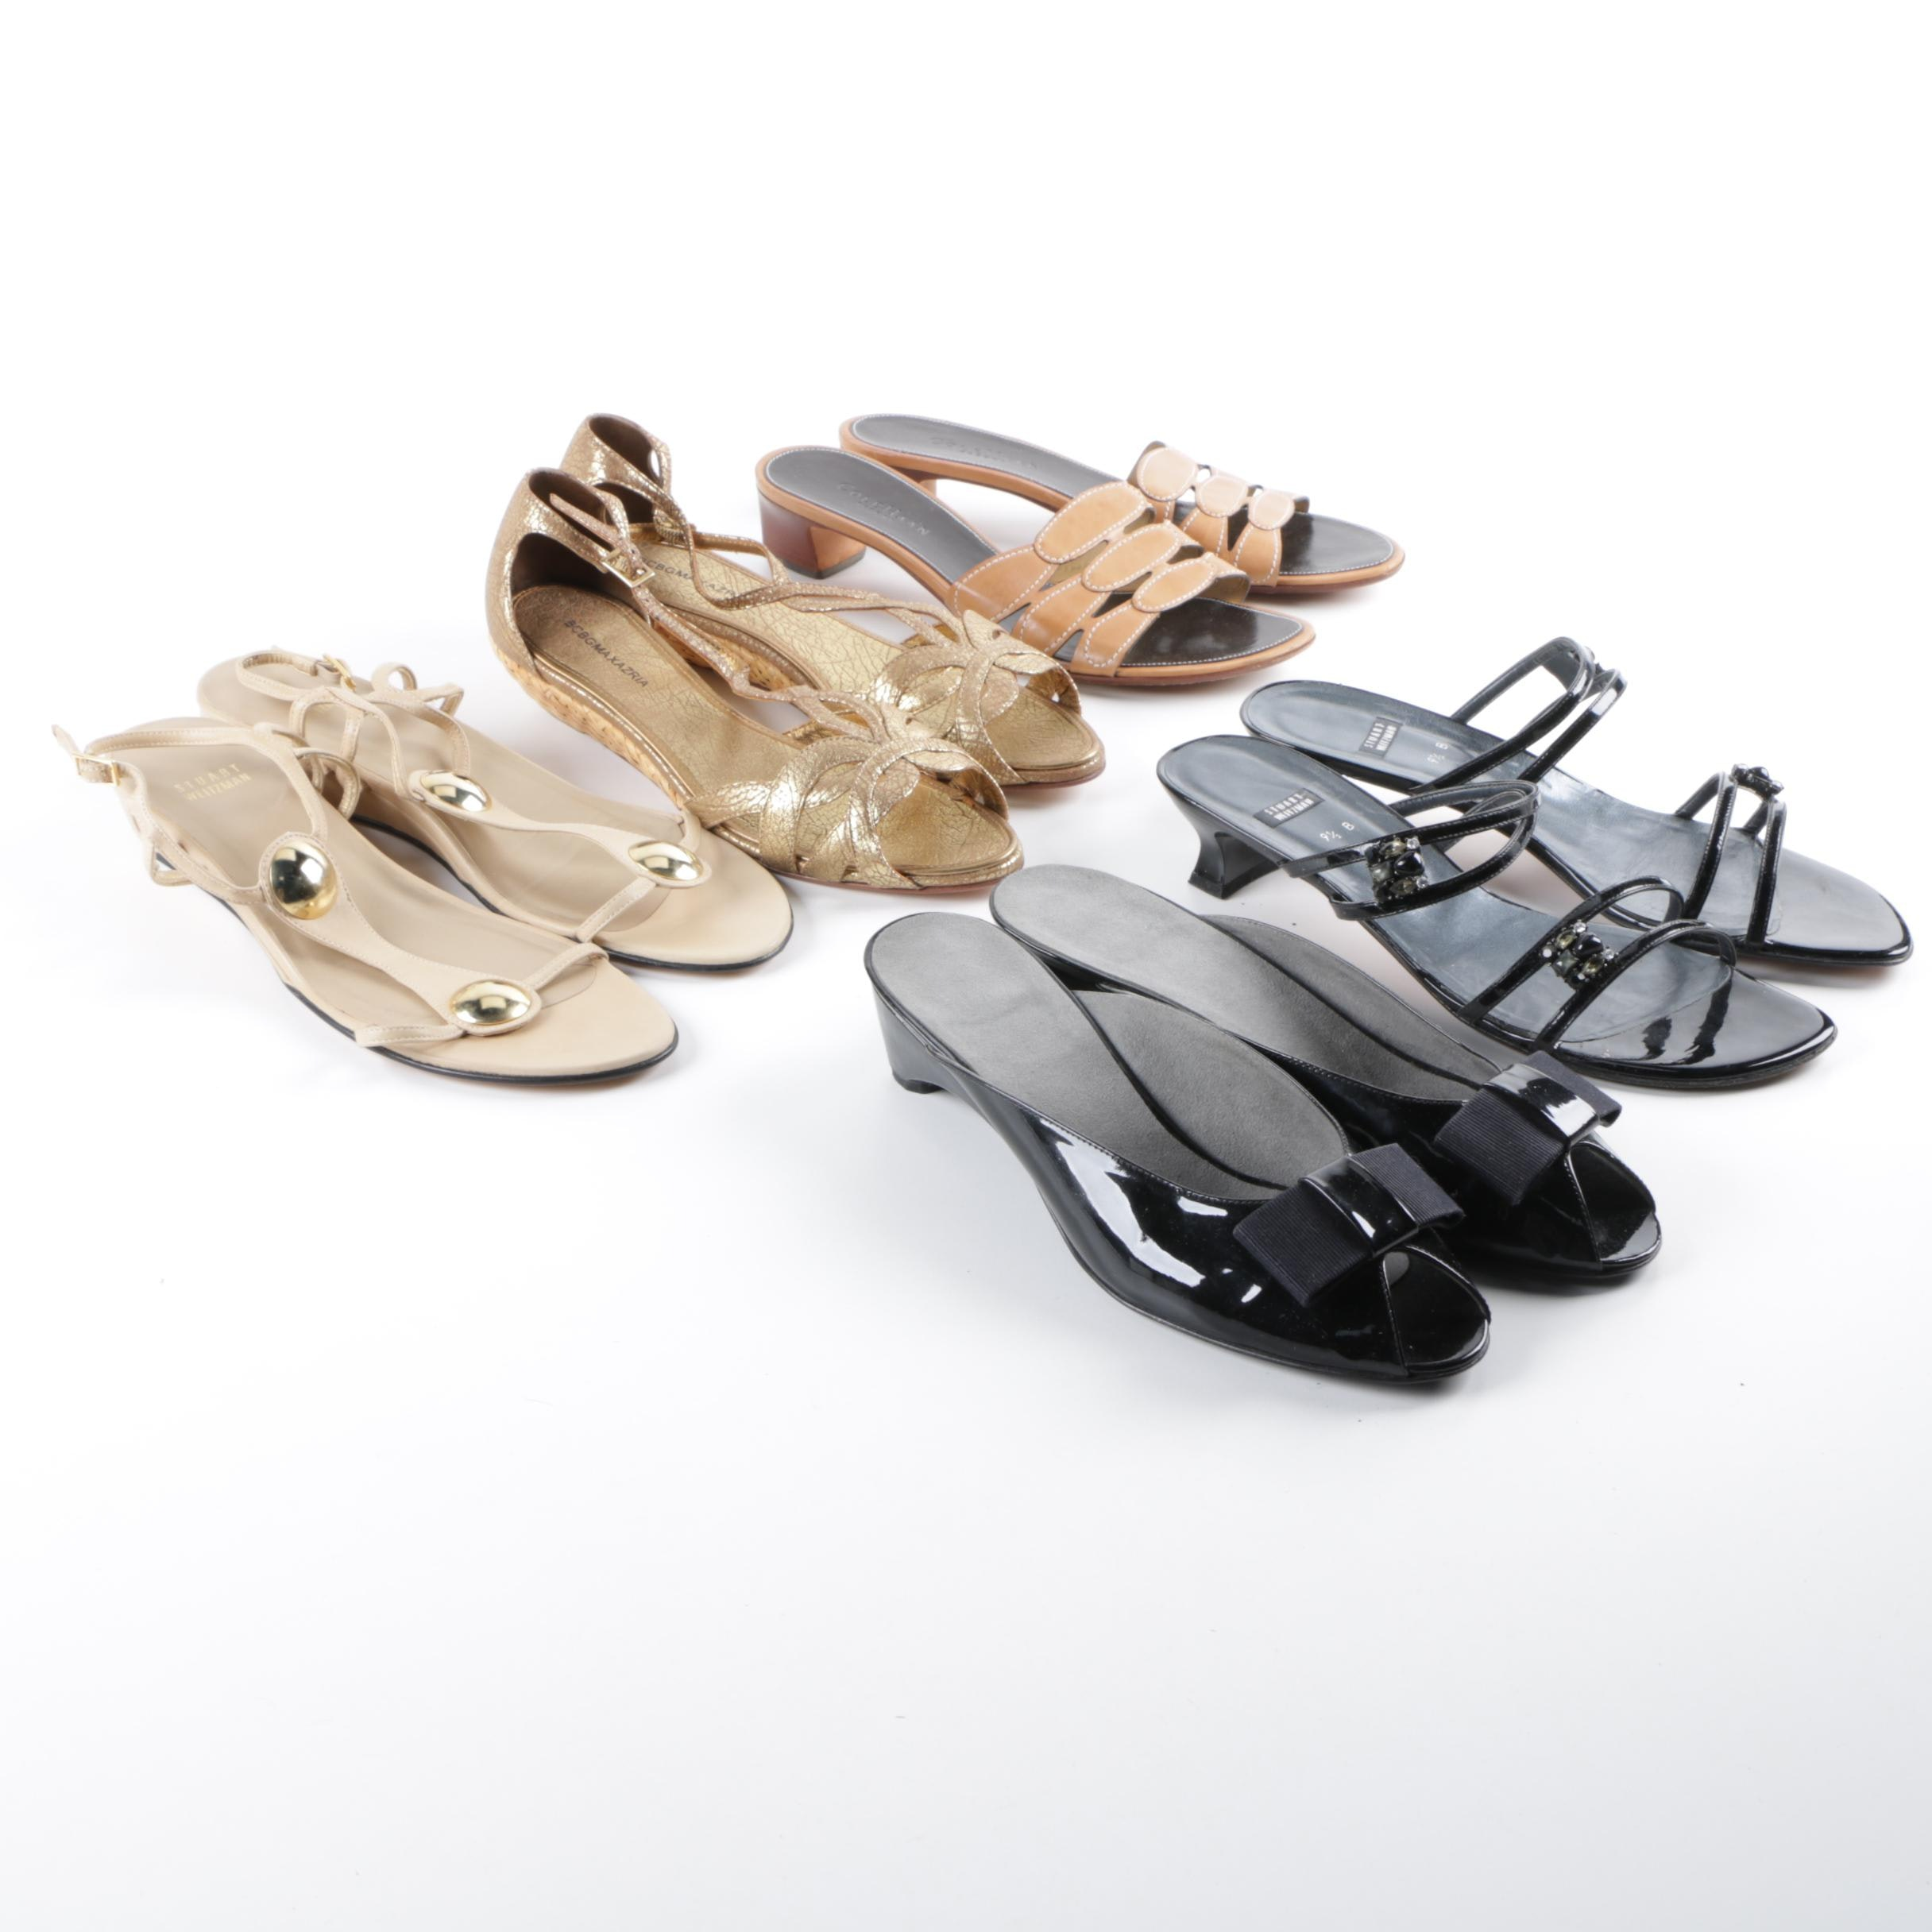 Women's Sandals Including Stuart Weitzman, BCBG Max Azria and Cole Haan